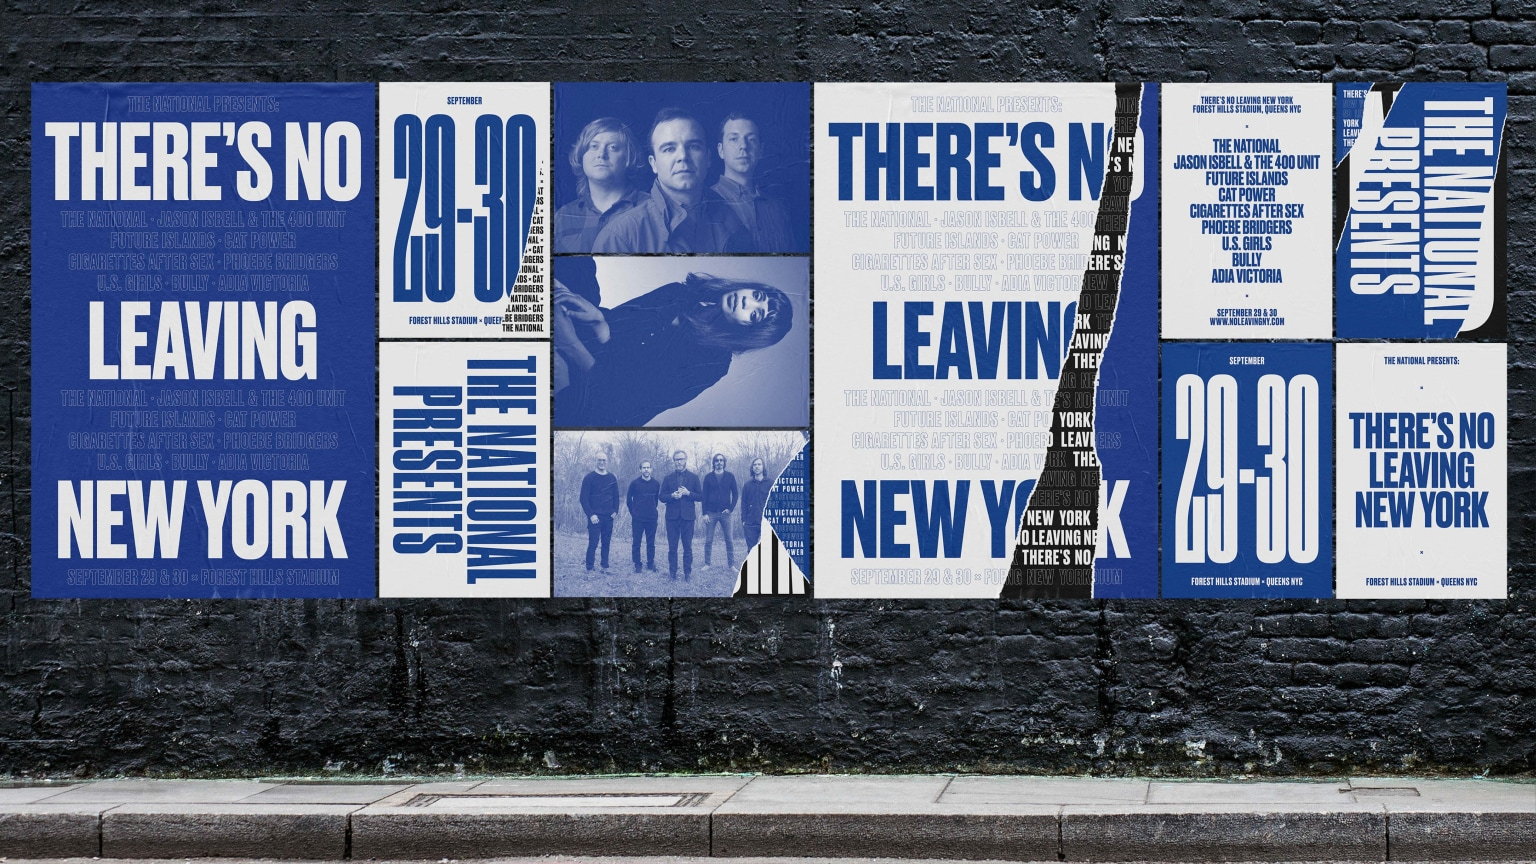 The National - There's No Leaving New York